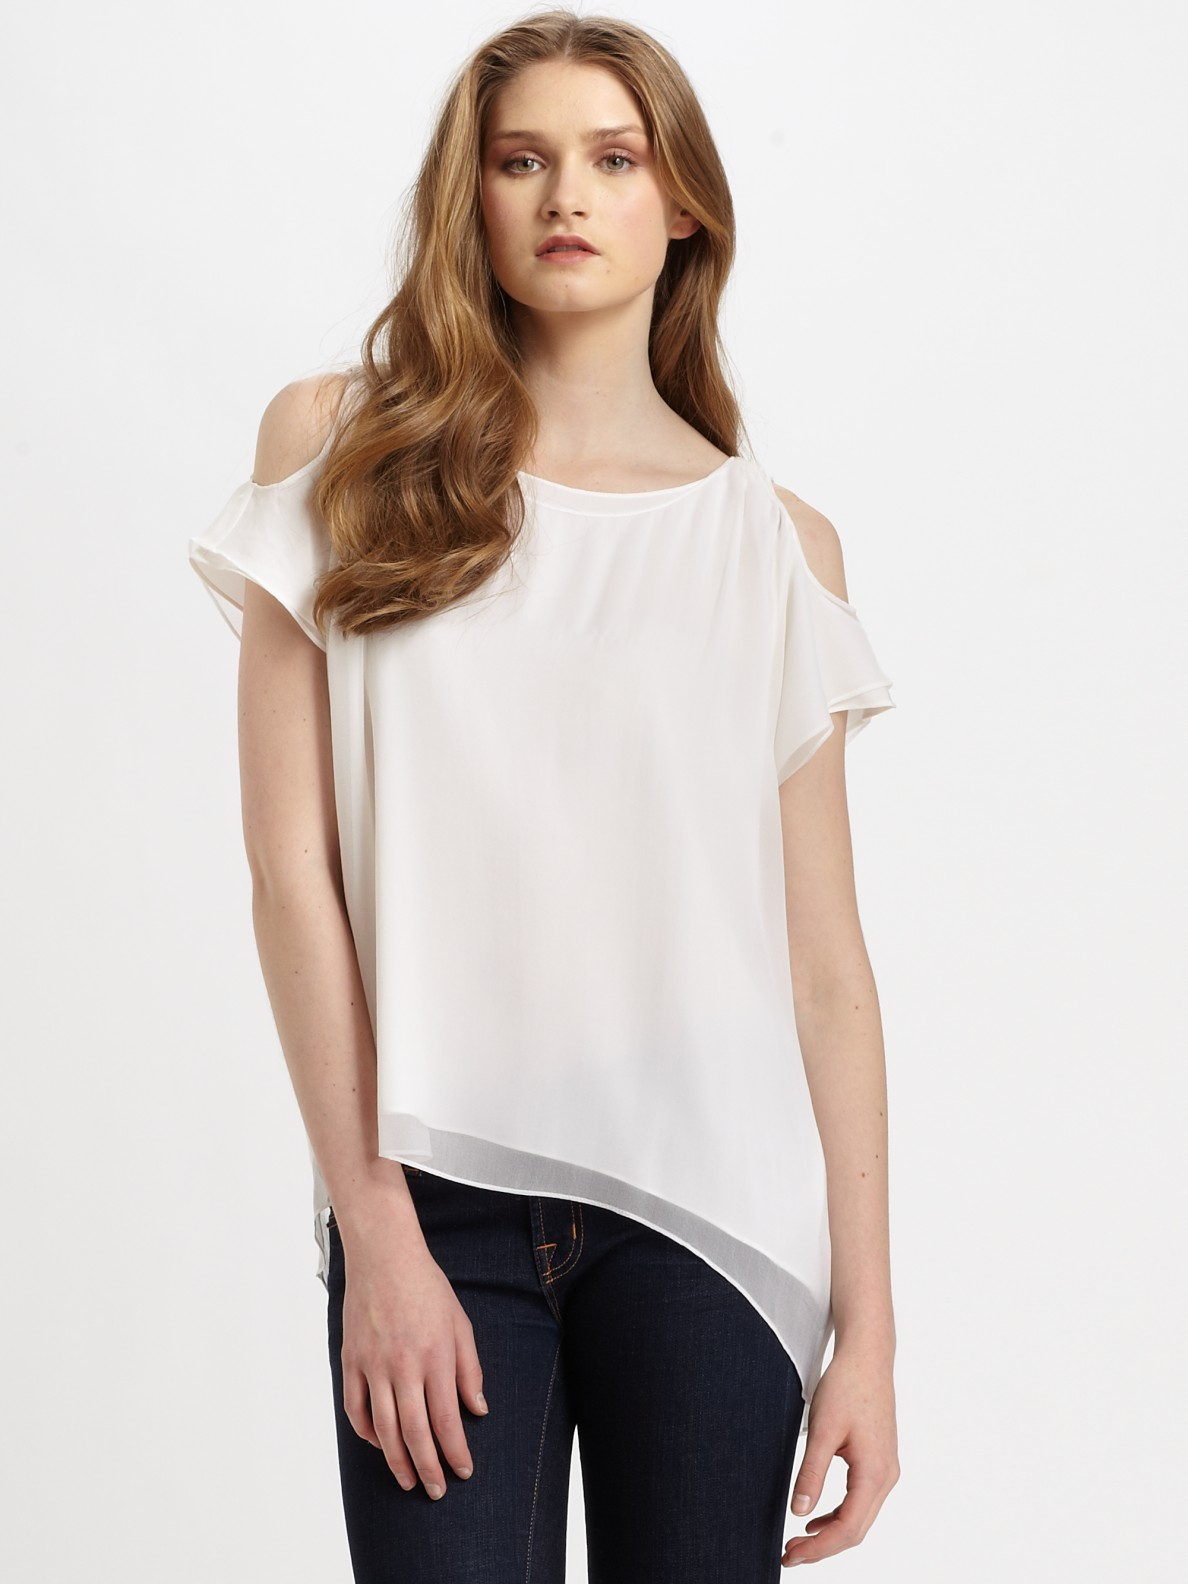 Women S White Ruffle Blouse